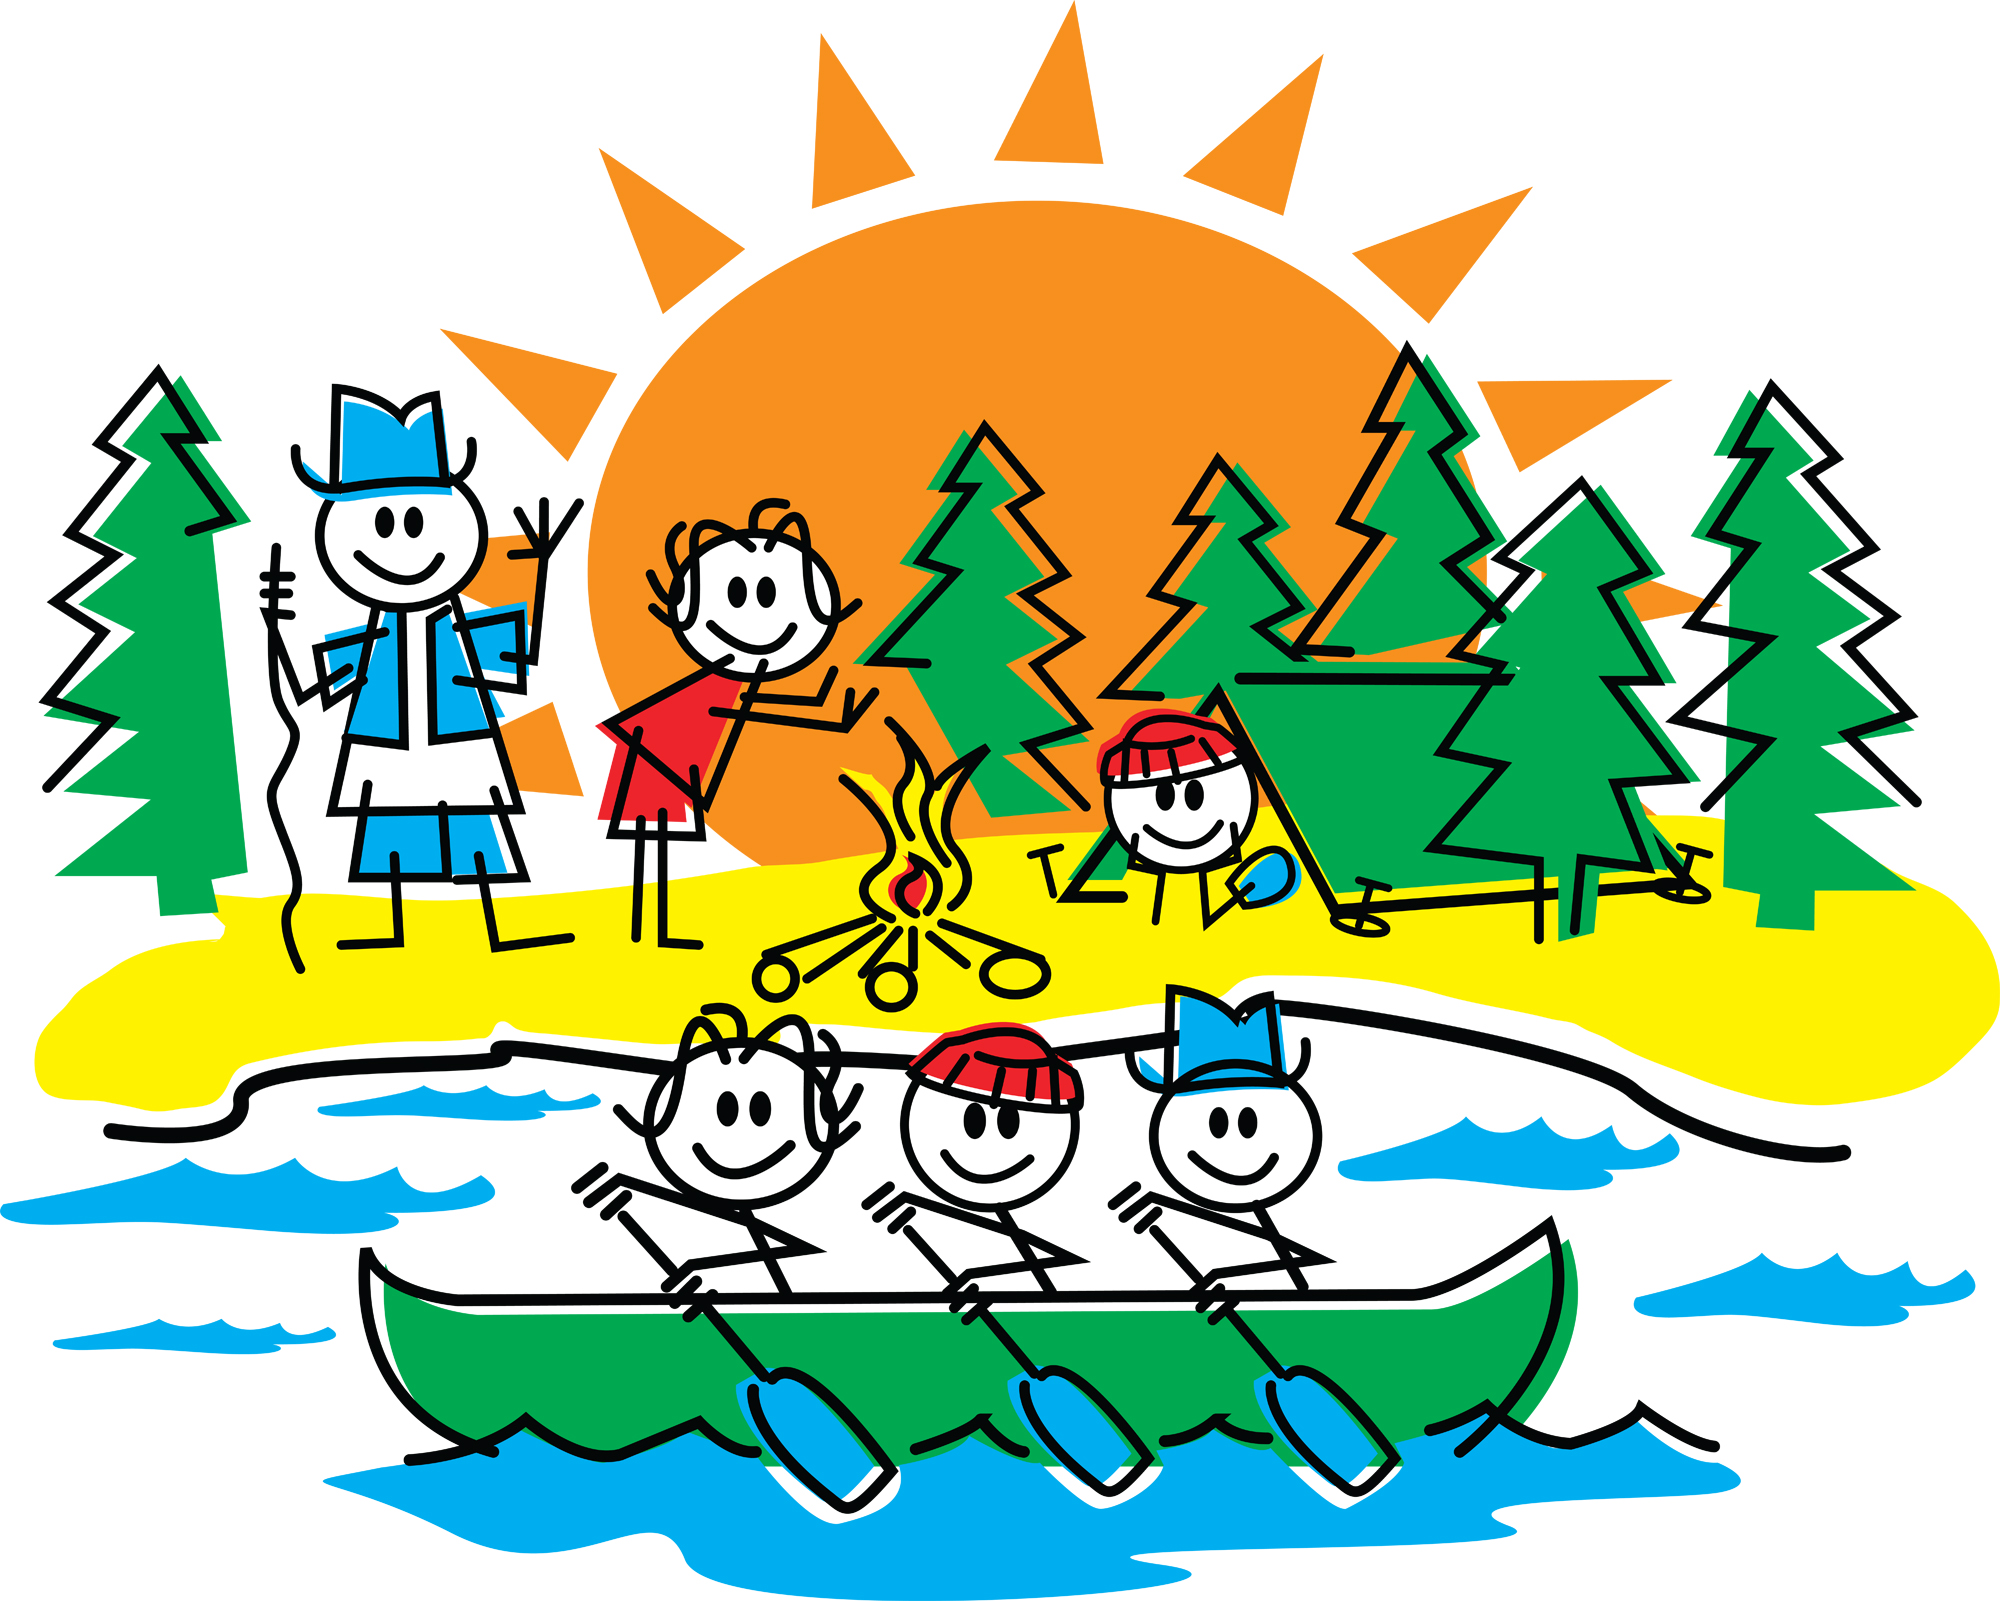 Summer camp clipart graphic royalty free download Summer Camp Clip Art N37 free image graphic royalty free download